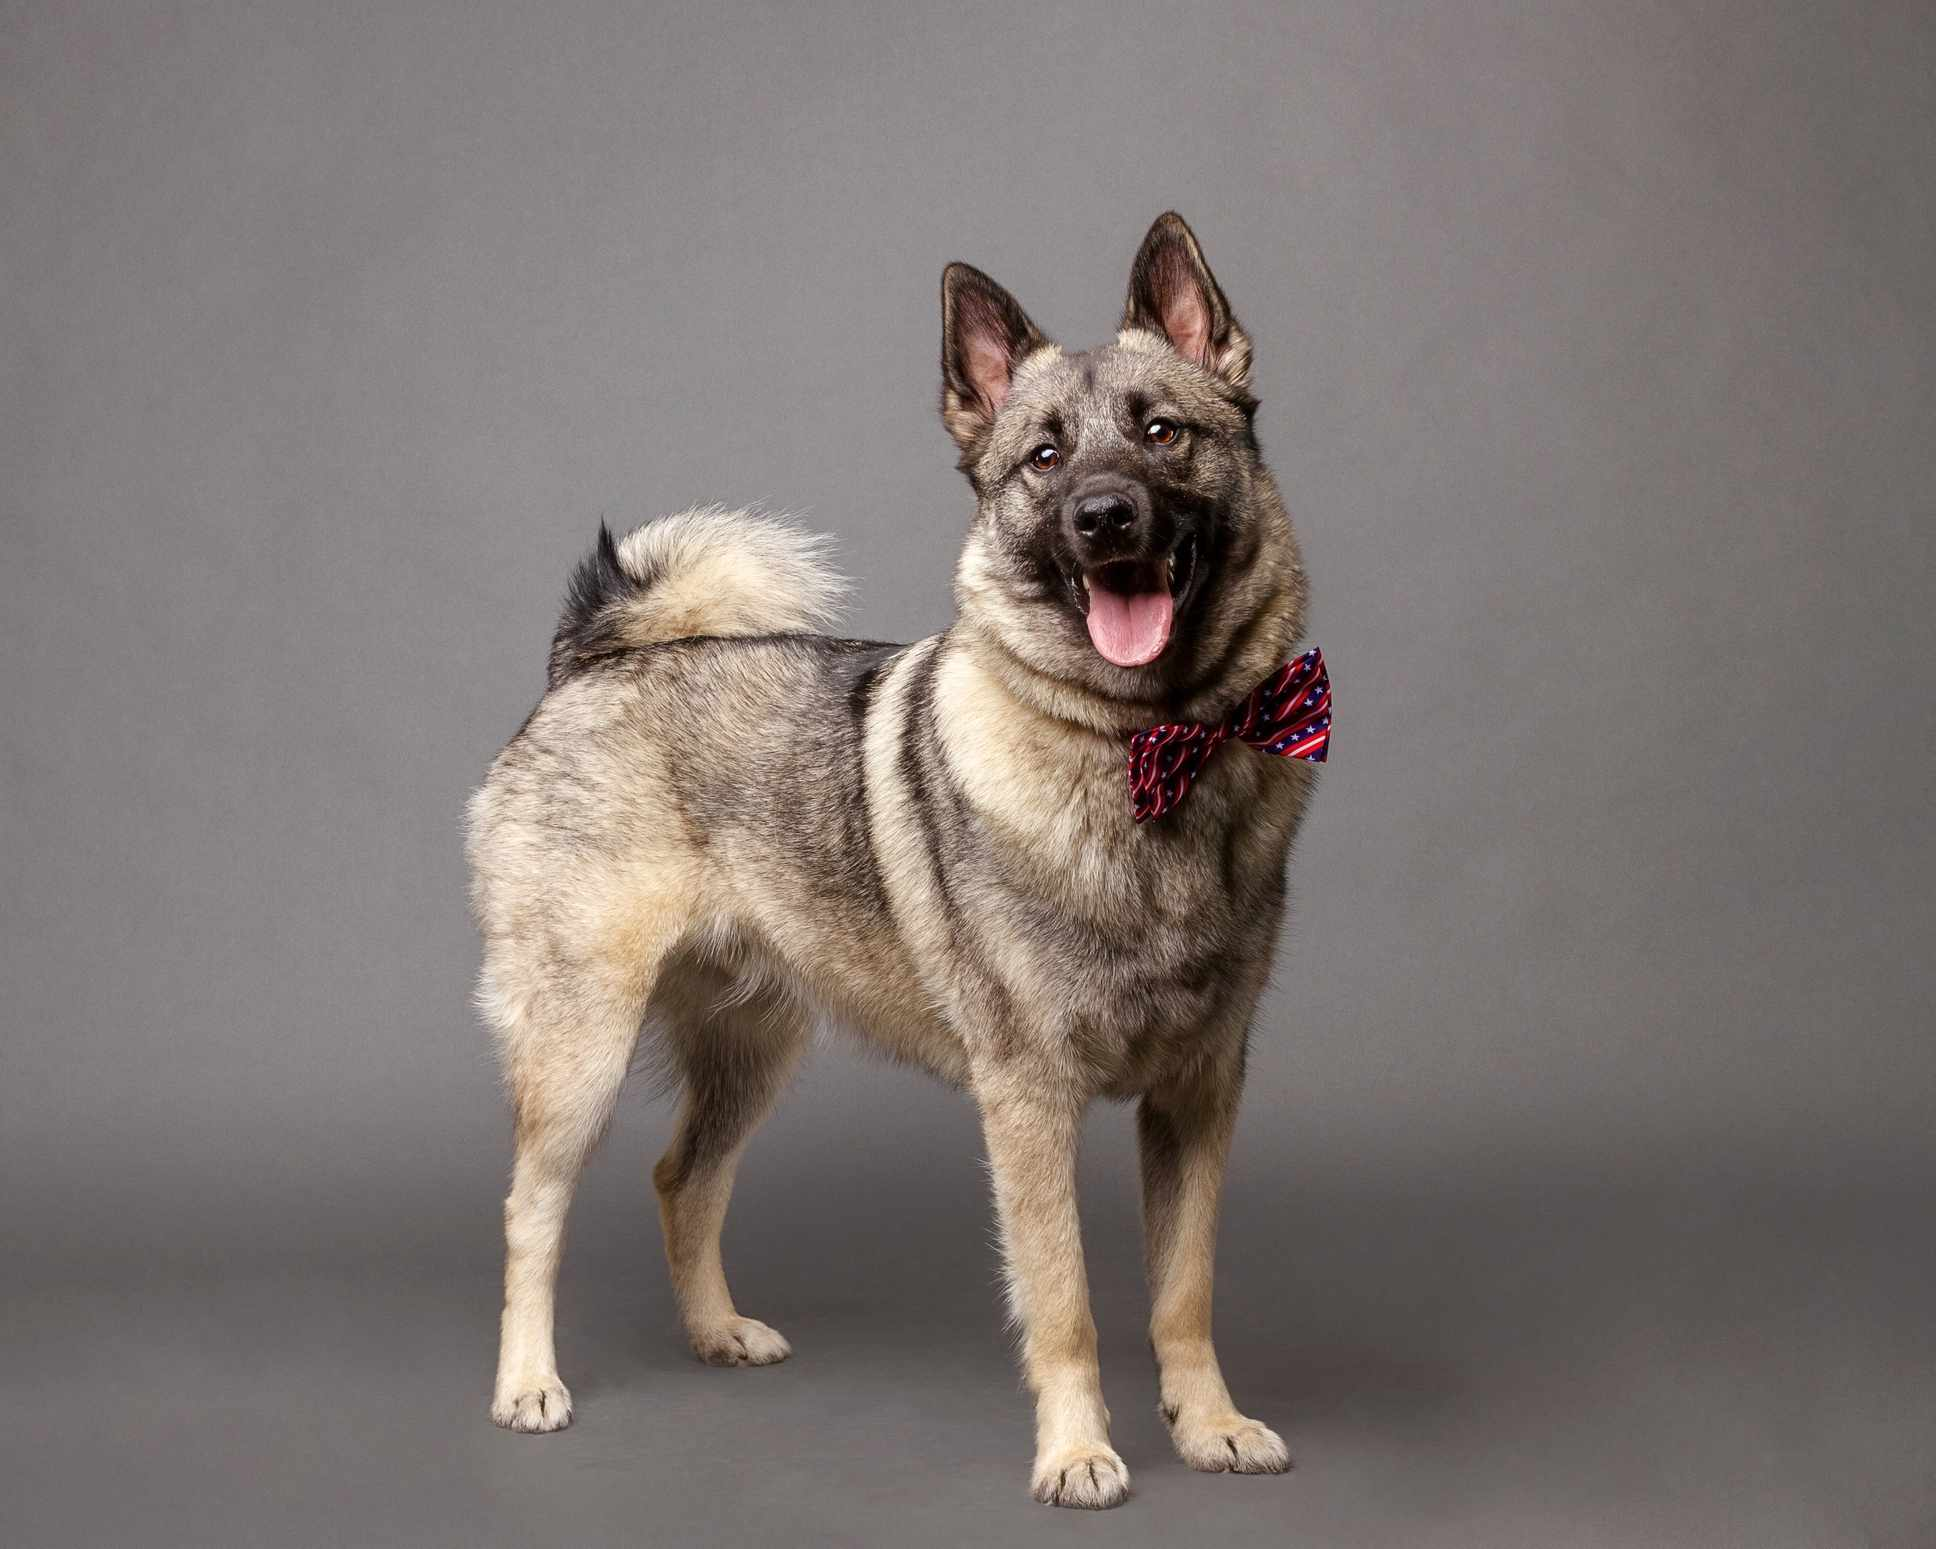 Norwegian Elkhound standing with a bowtie on in front of a grey background